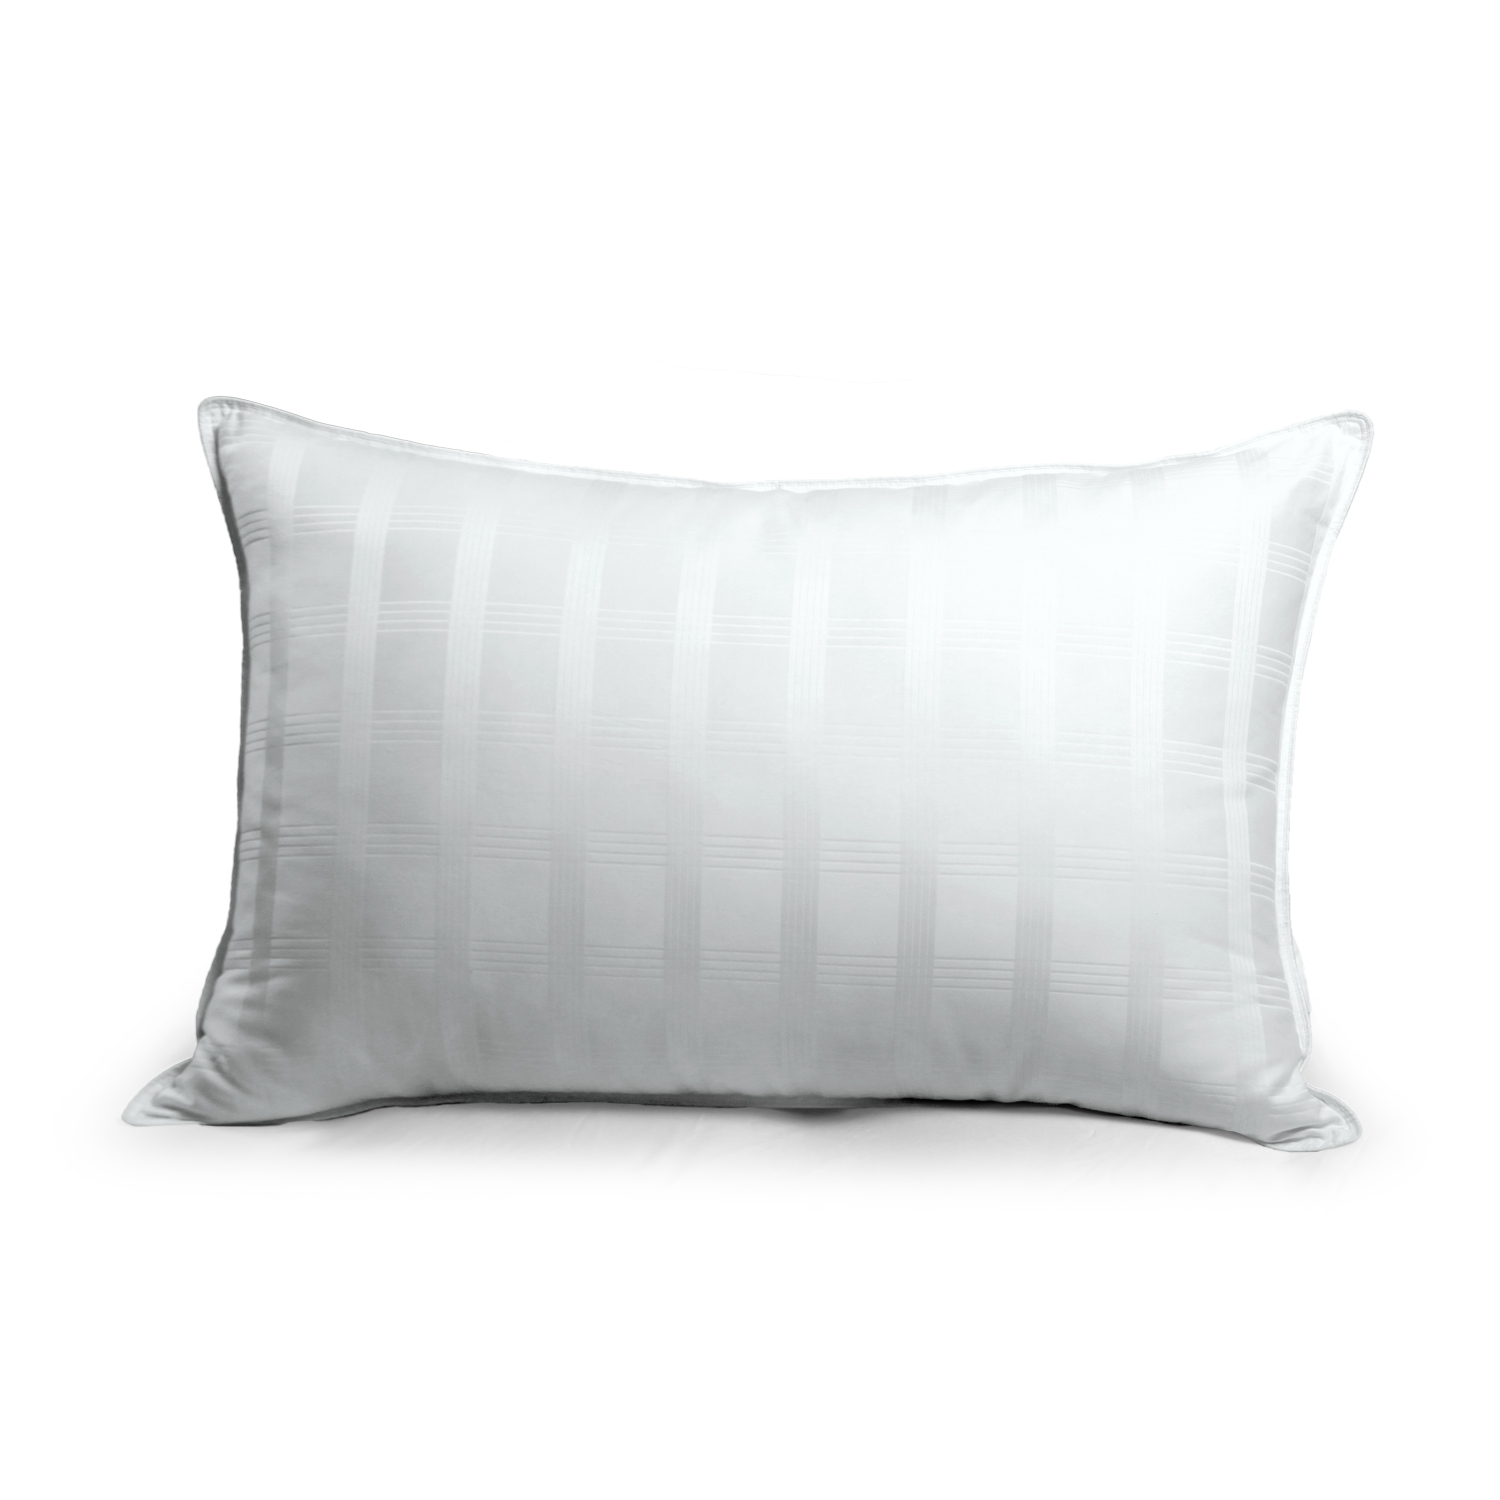 The Dream Supreme Elite Gel-Fiber Filled Pillow by Newpoint